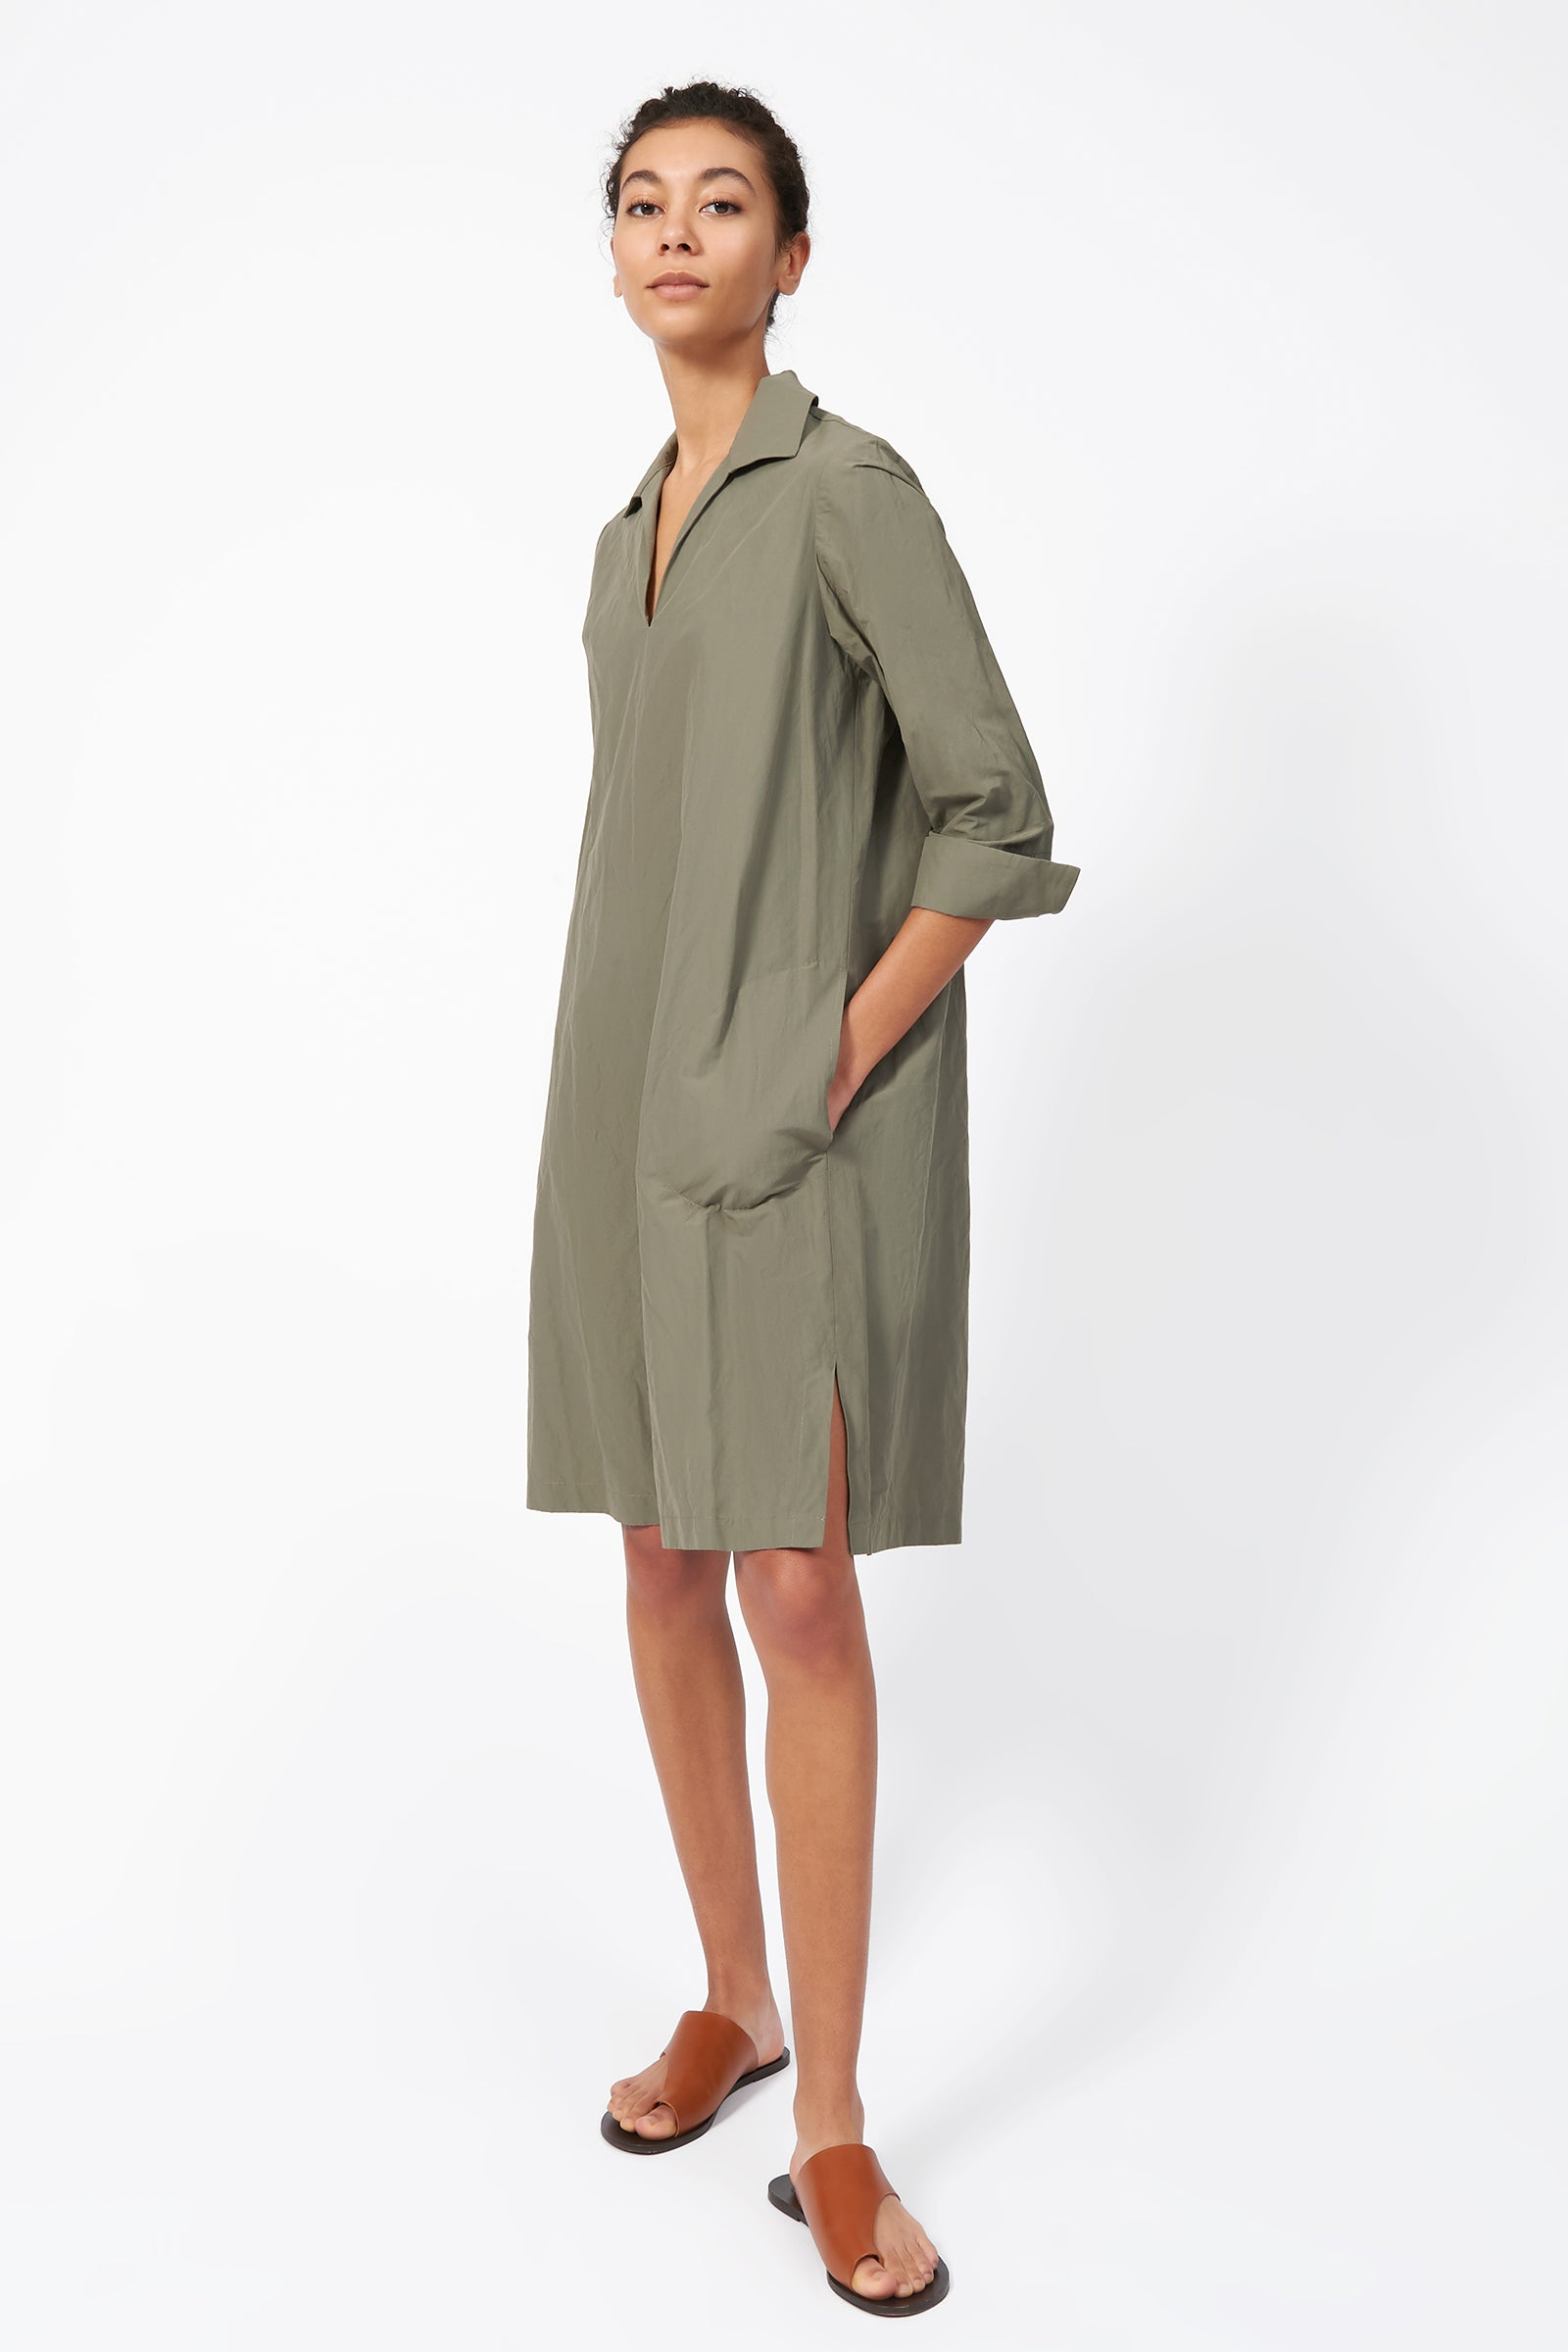 Kal Rieman Collared V Neck Dress in Olive on Model Front Side View